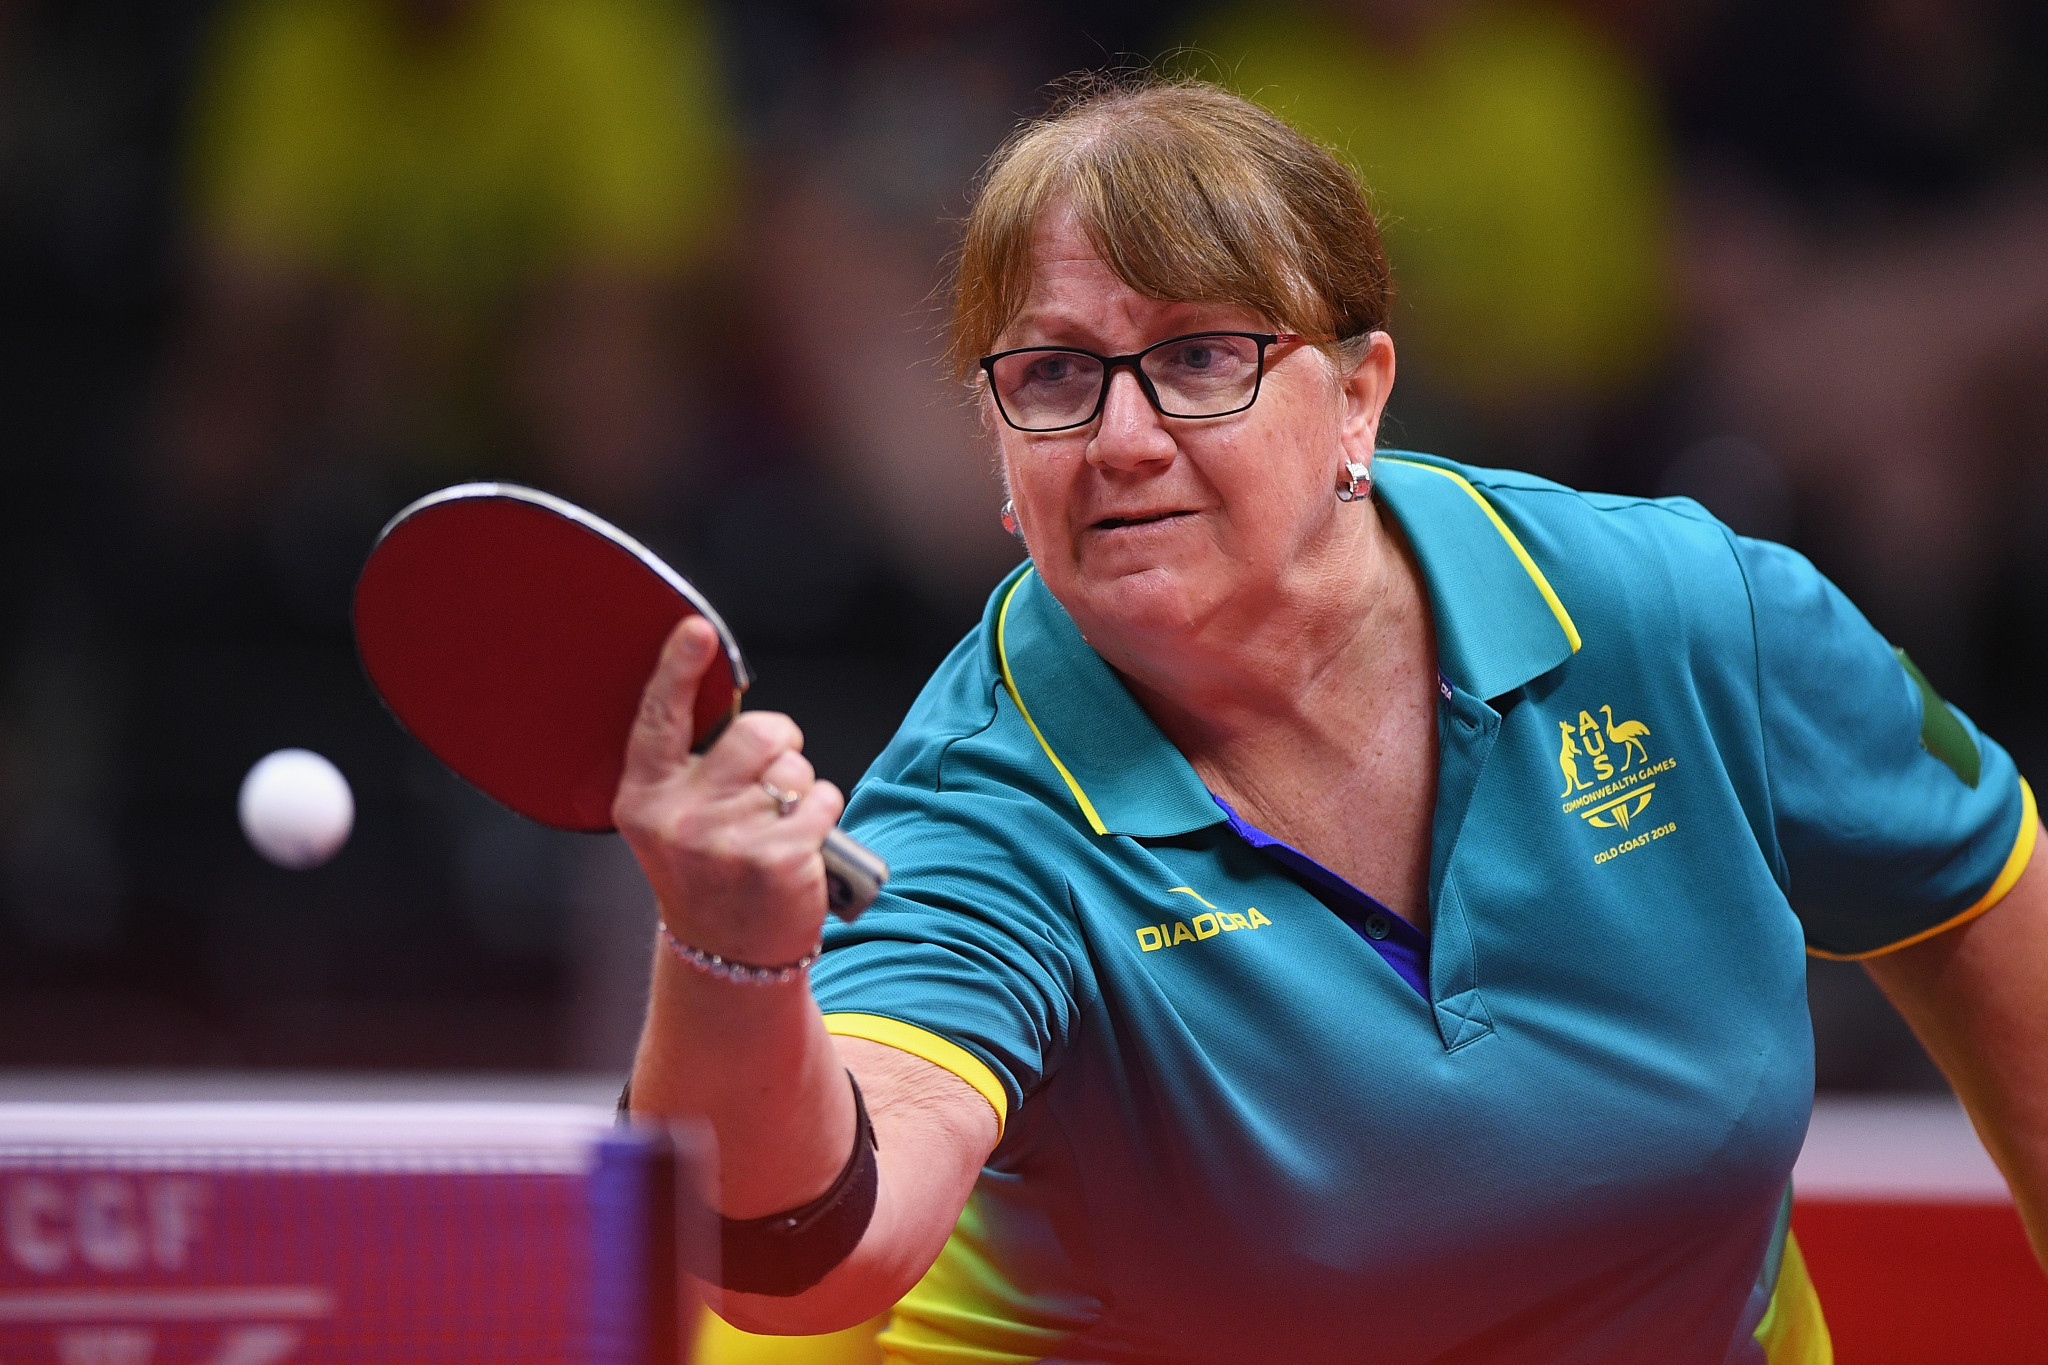 Andrea McDonnell represented Australia at the Gold Coast 2018 Commonwealth Games and the Rio 2016 Paralympic Games ©Getty Images